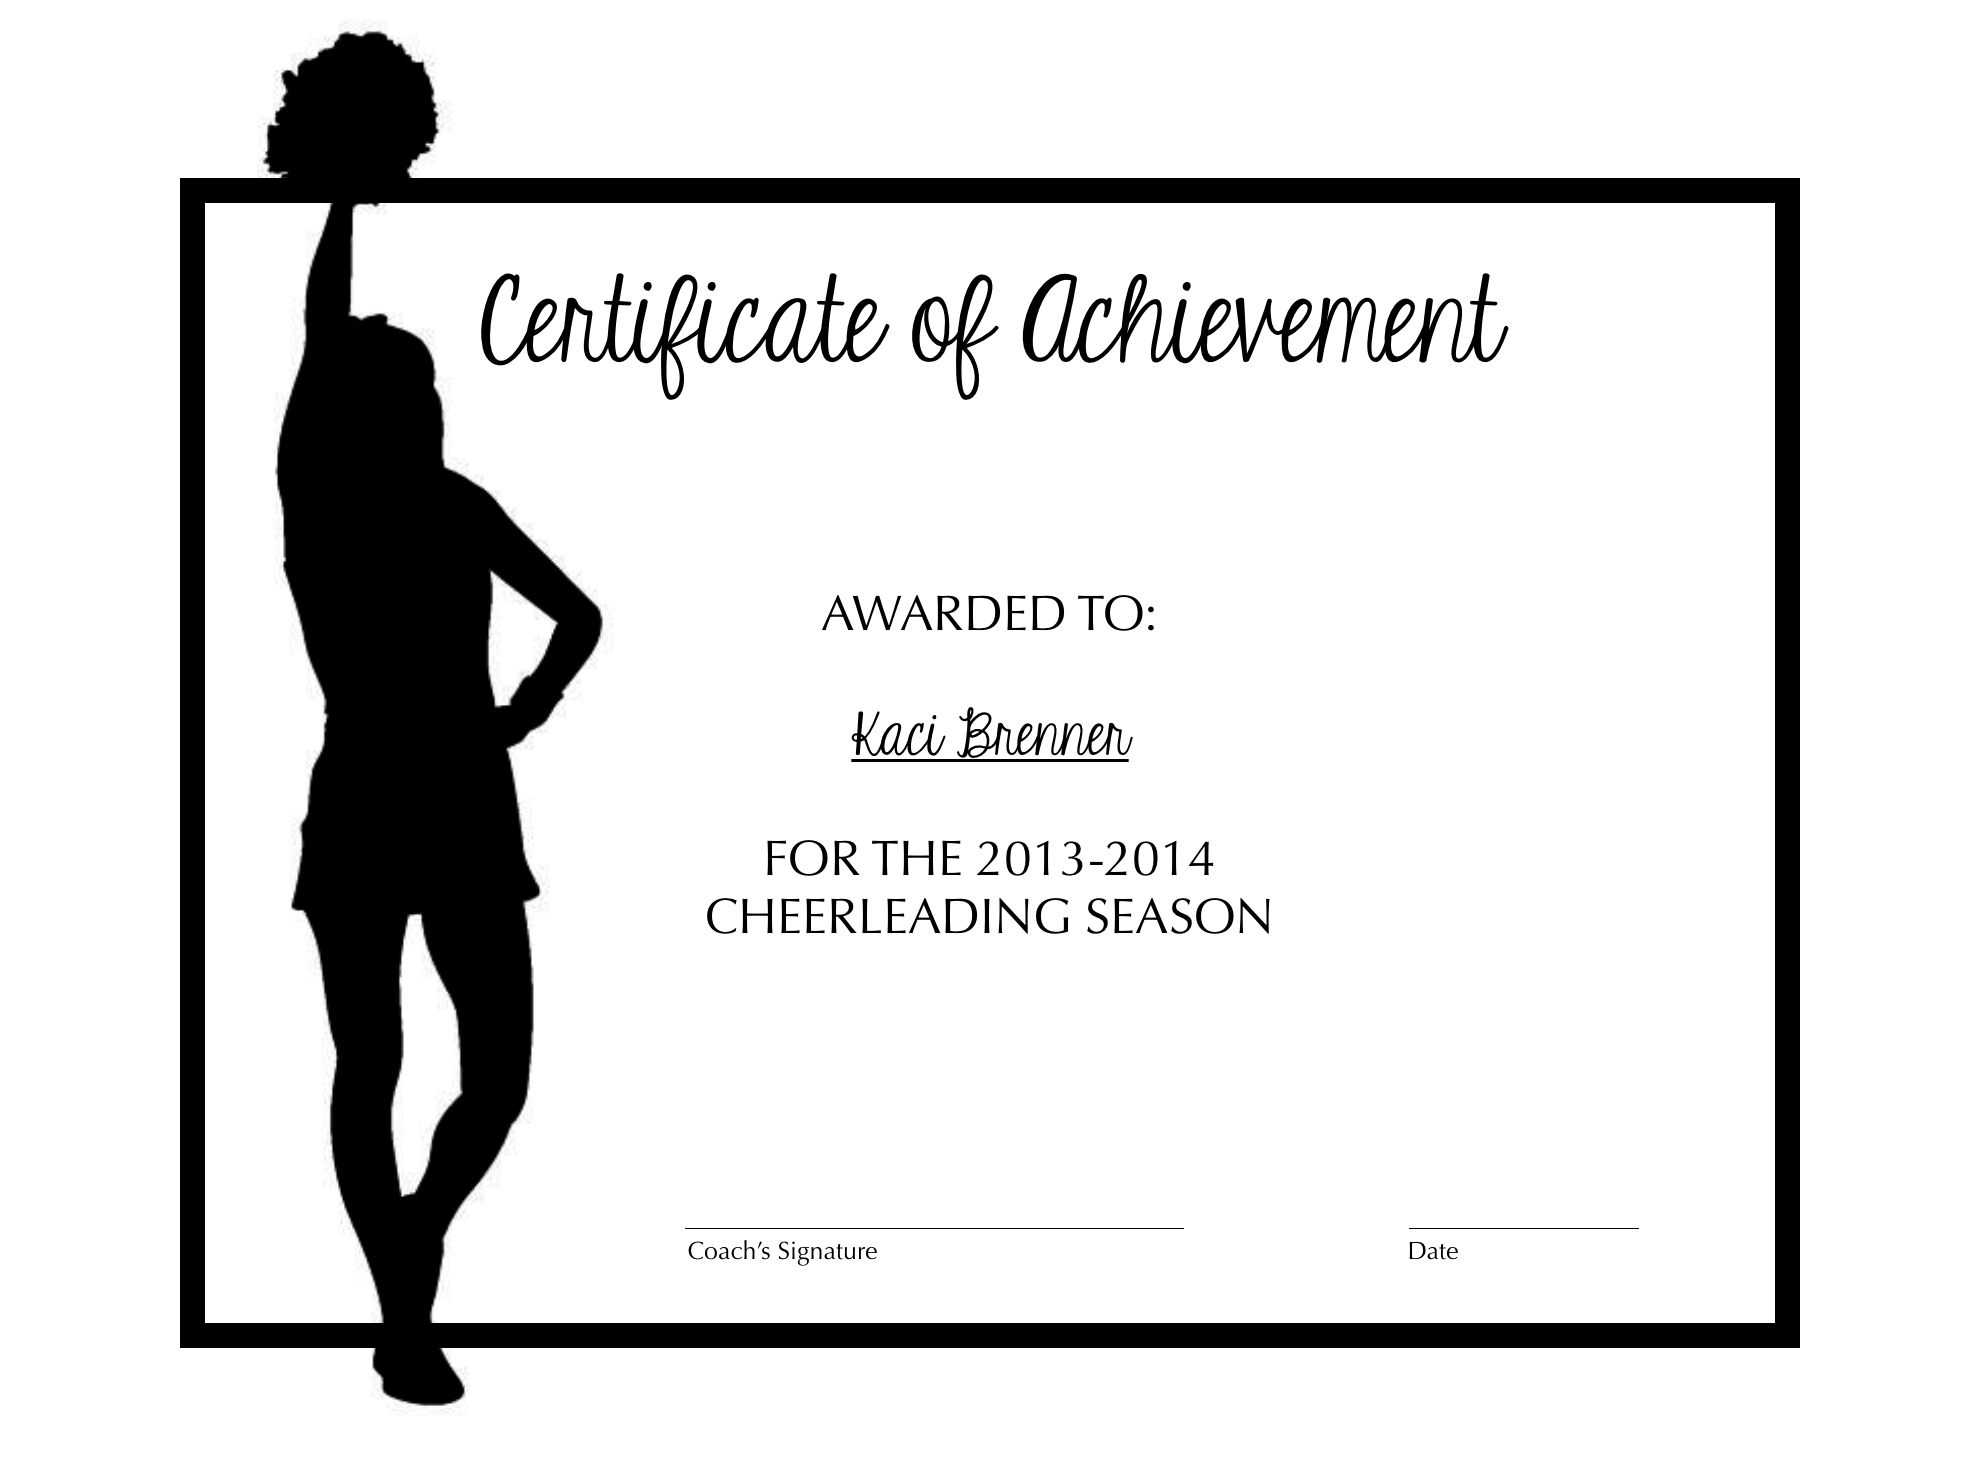 Cheerleading Certificate Of Achievement | Cheer | Cheer Coaches - Free Printable Cheerleading Certificates